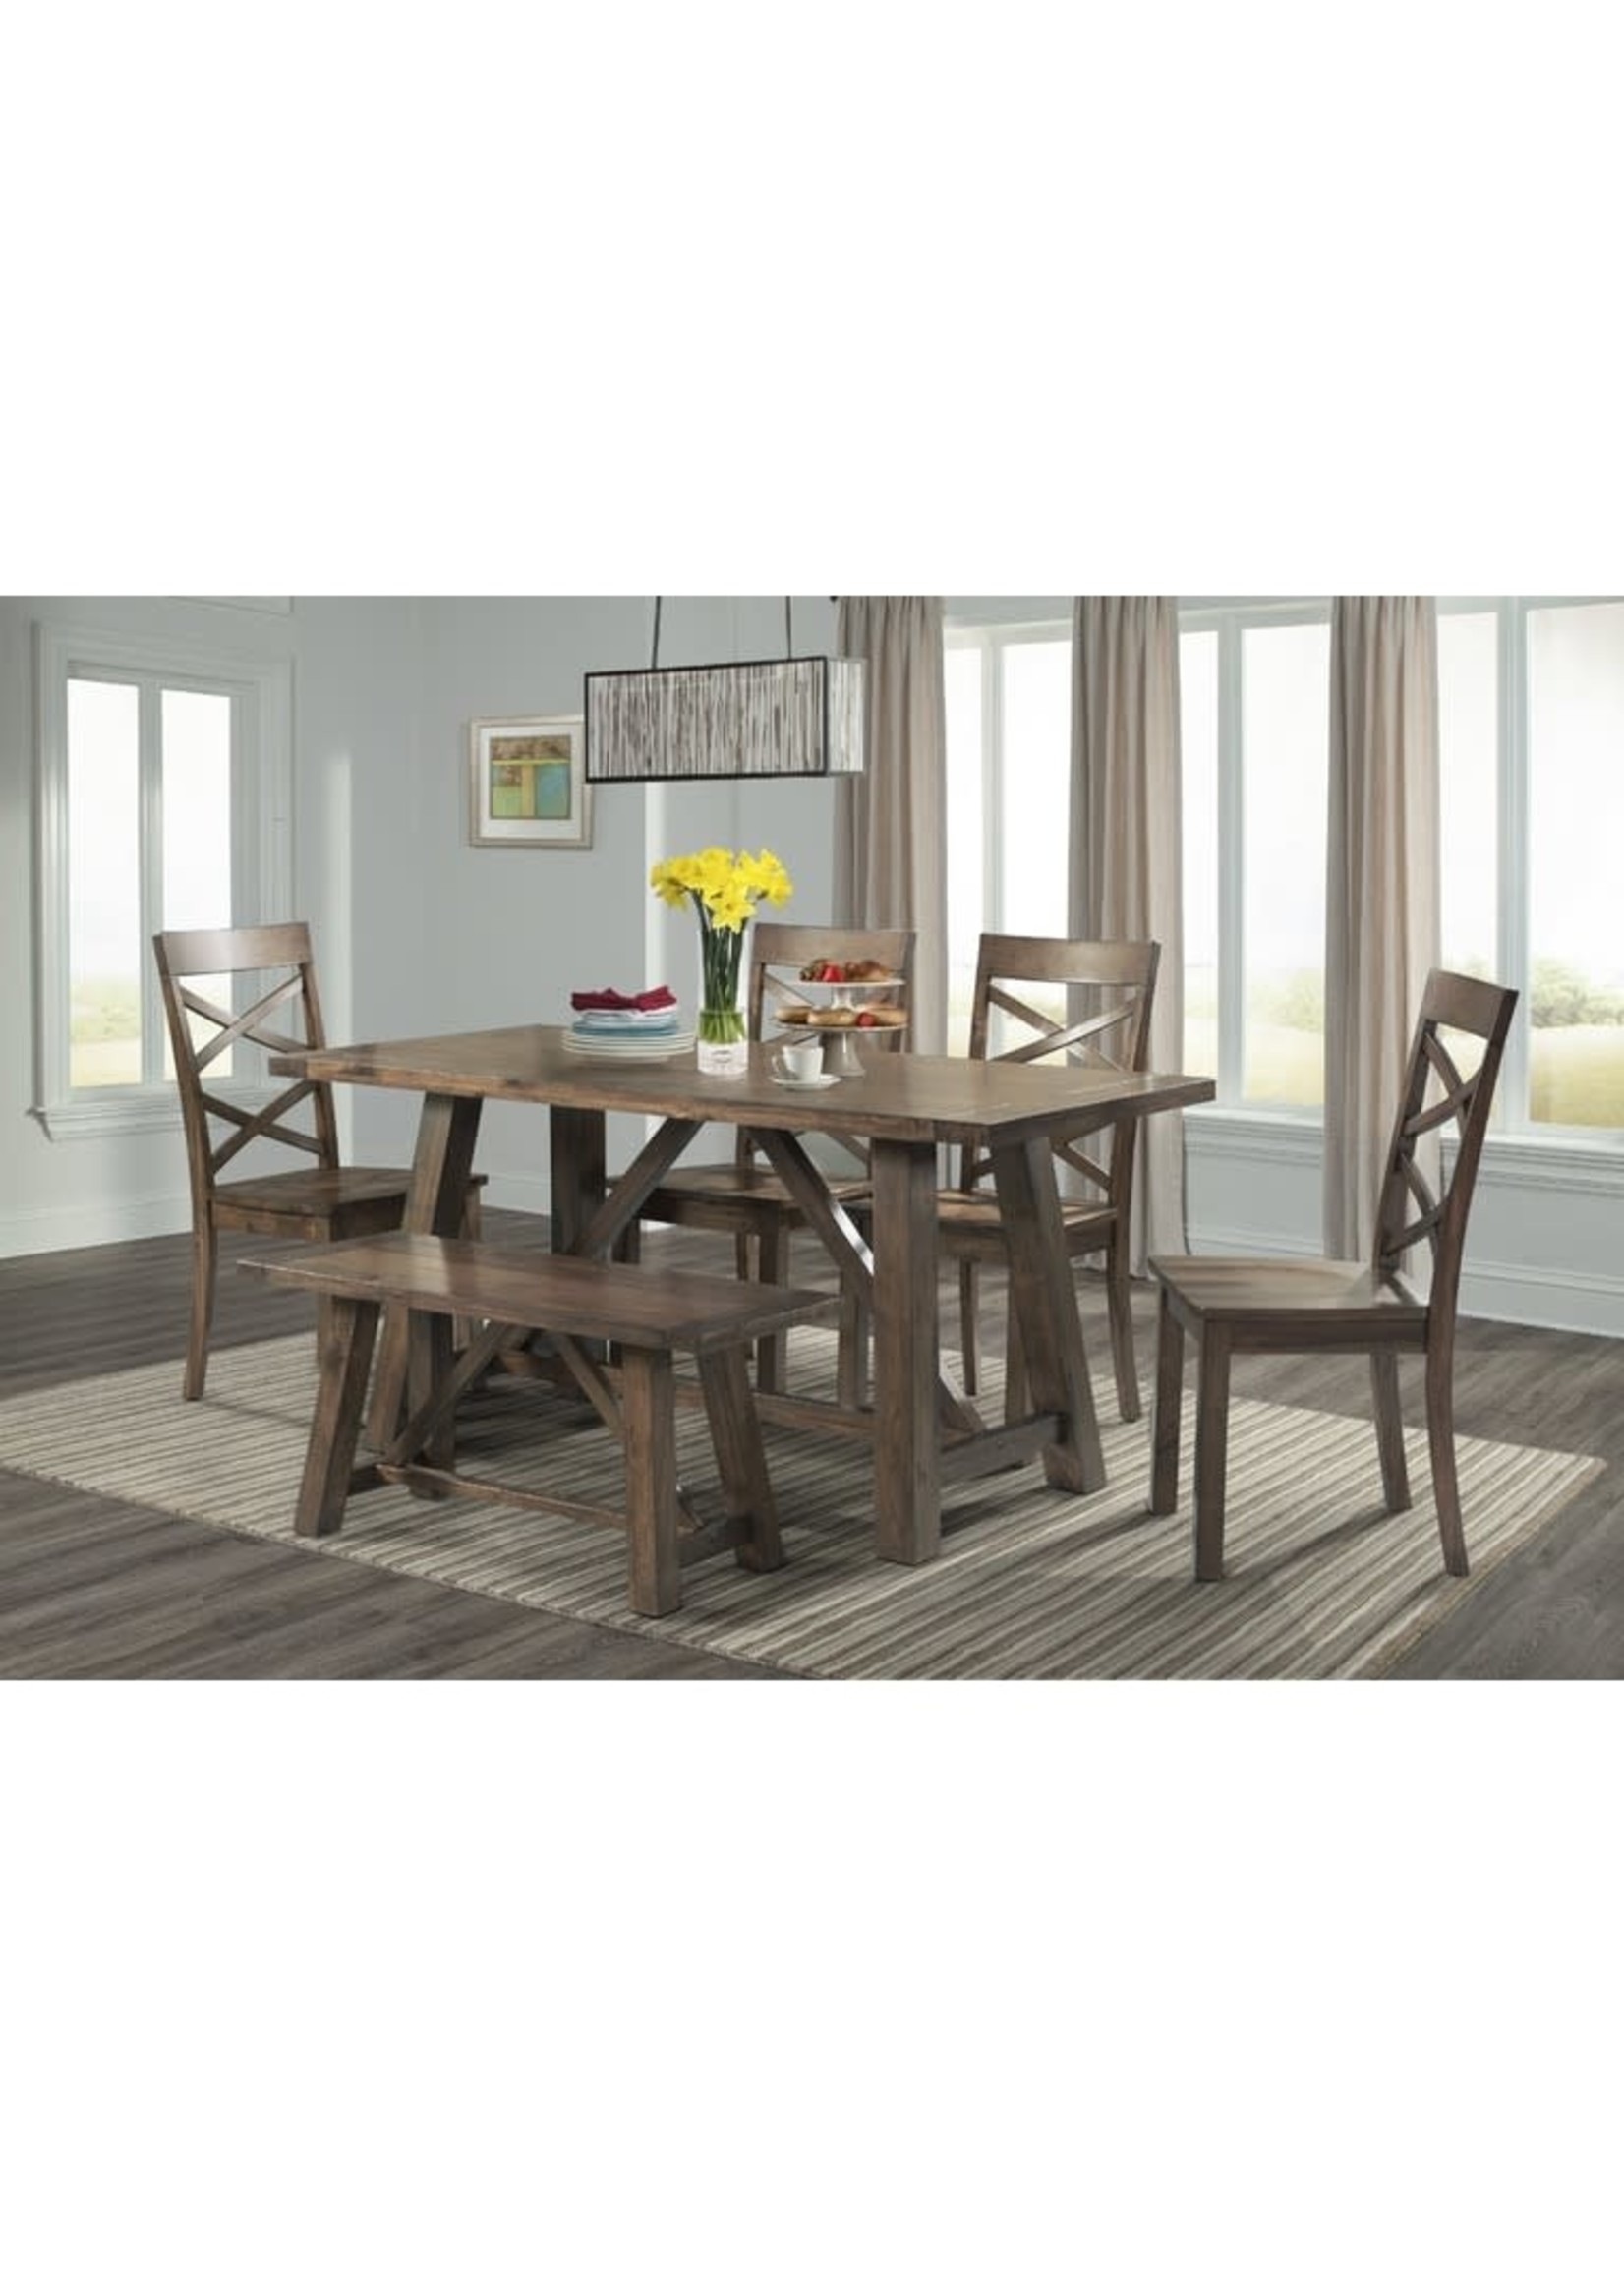 ELEMENTS DRN1006CS 6 PC COUNTER DINING SET RENEGADE CHERRY